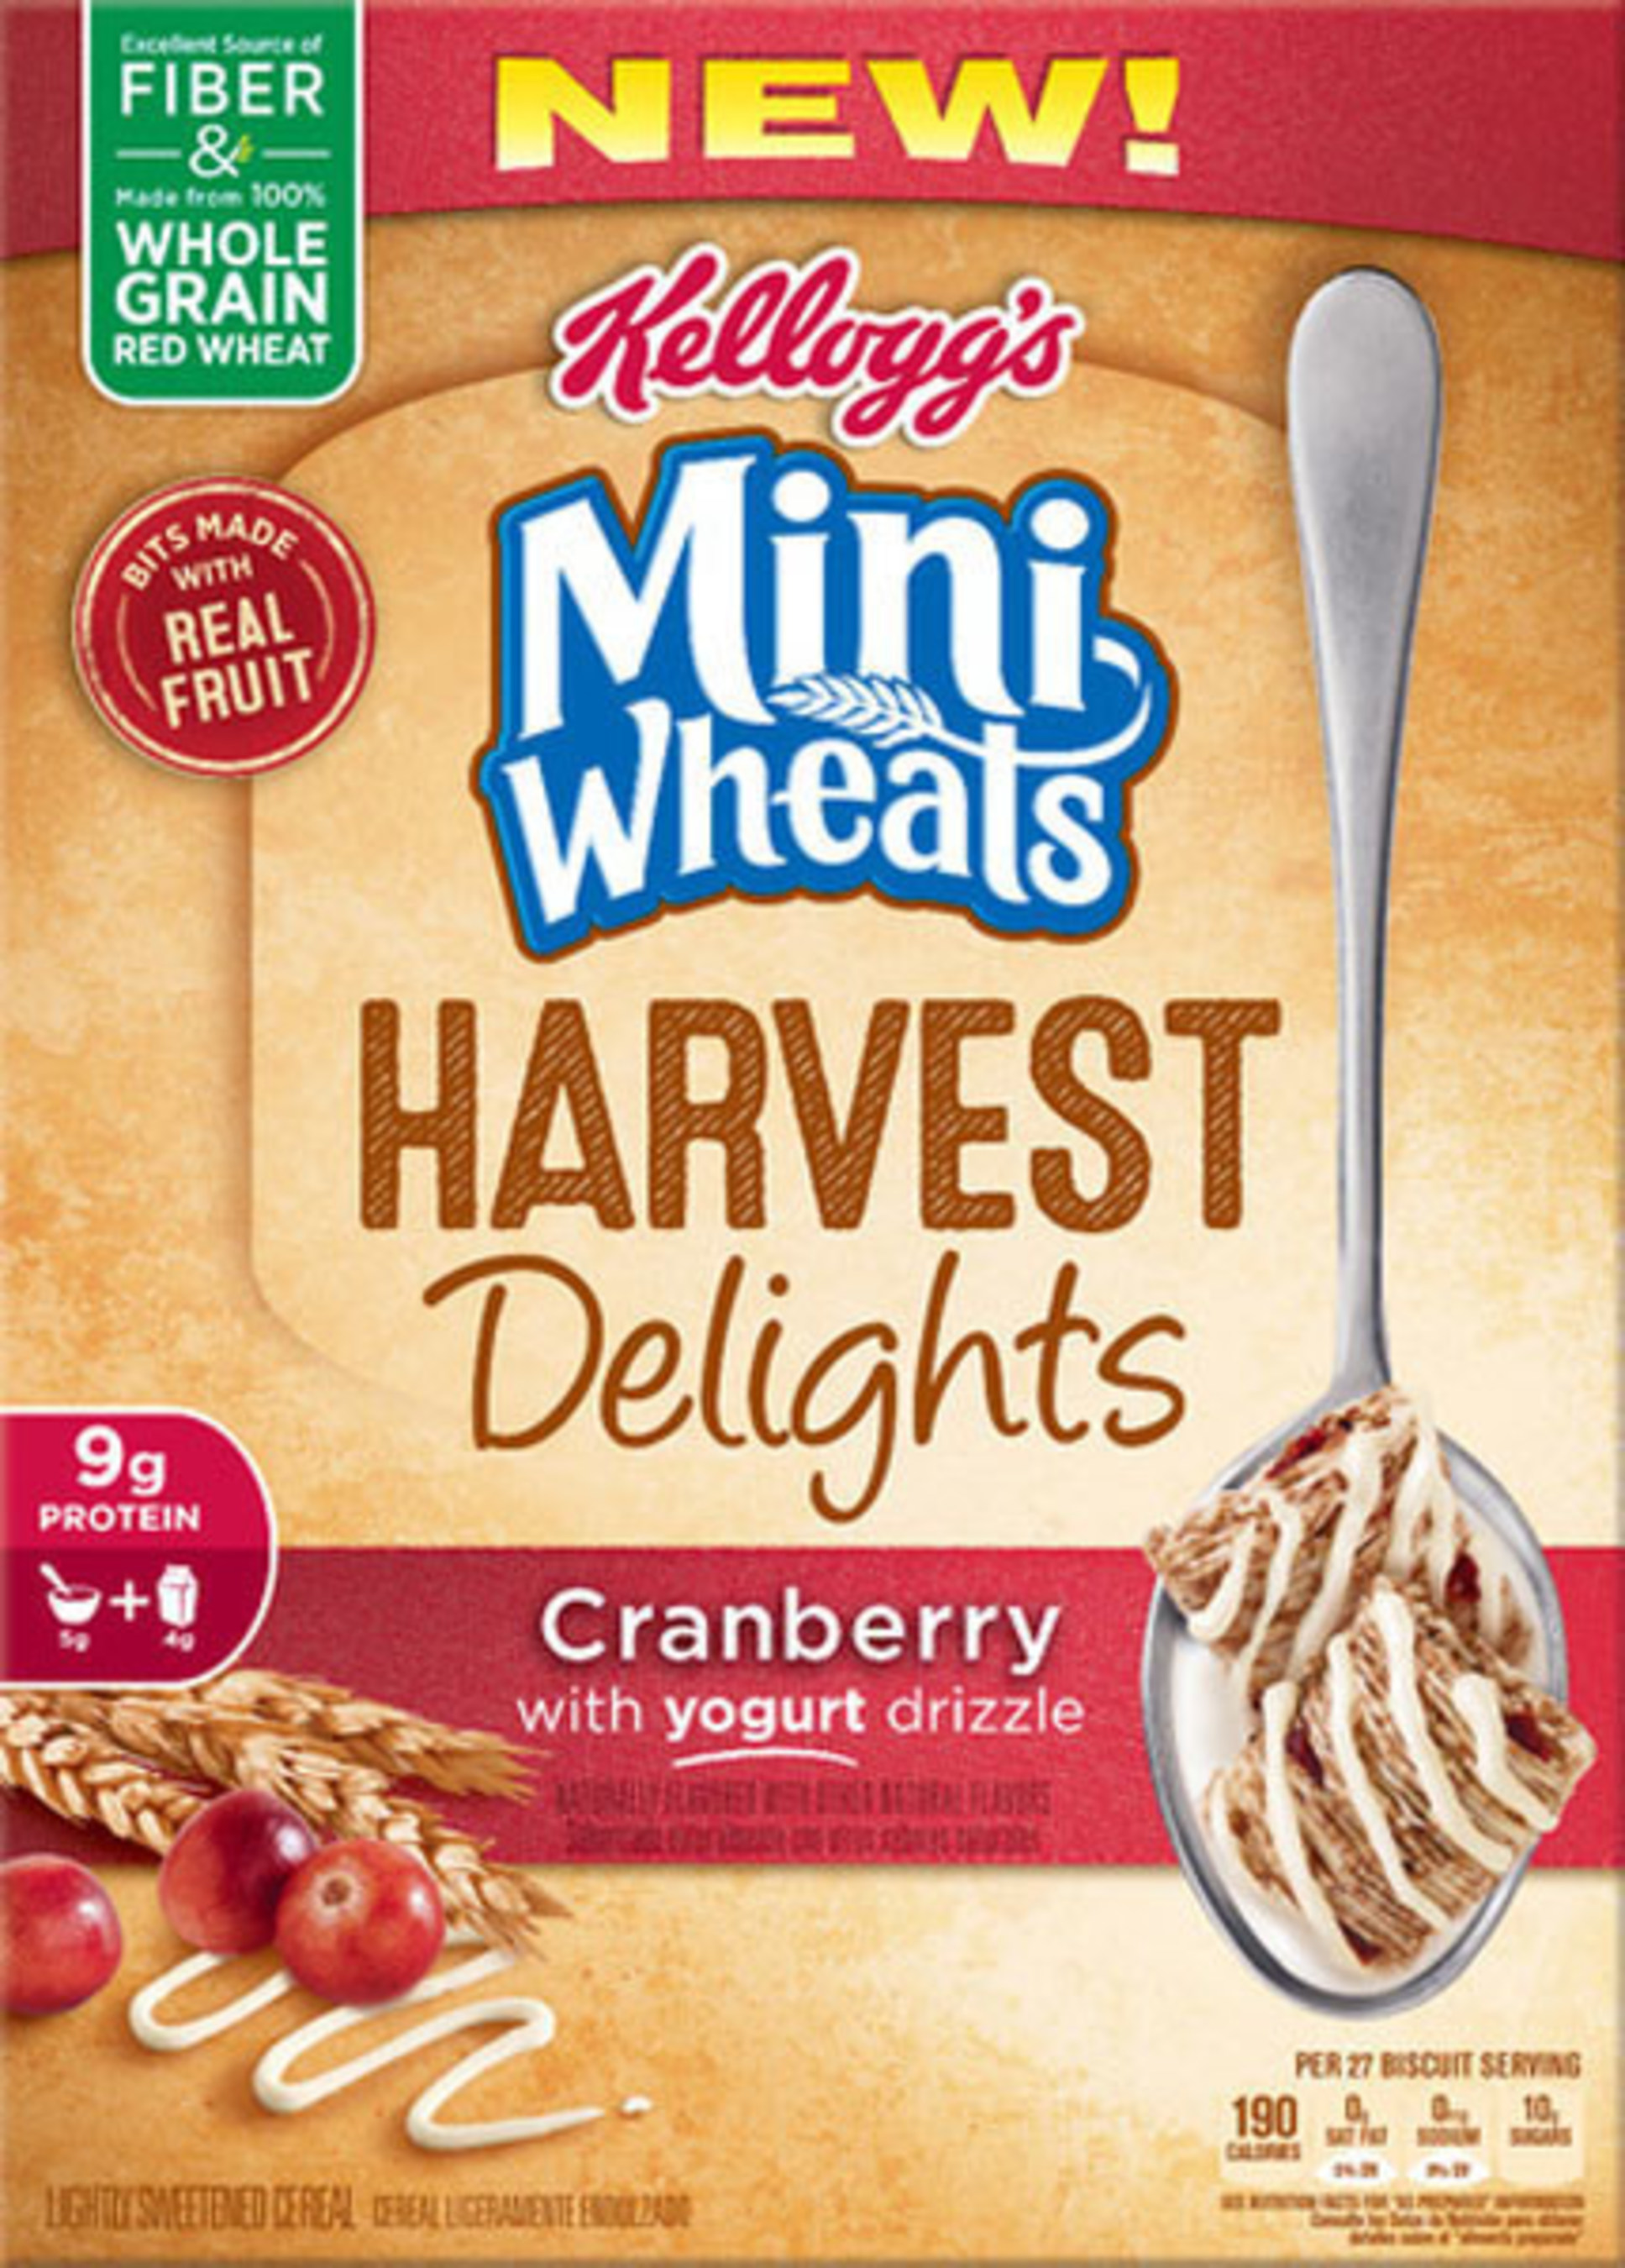 Mini Wheats Harvest Delights Cranberry Cereal